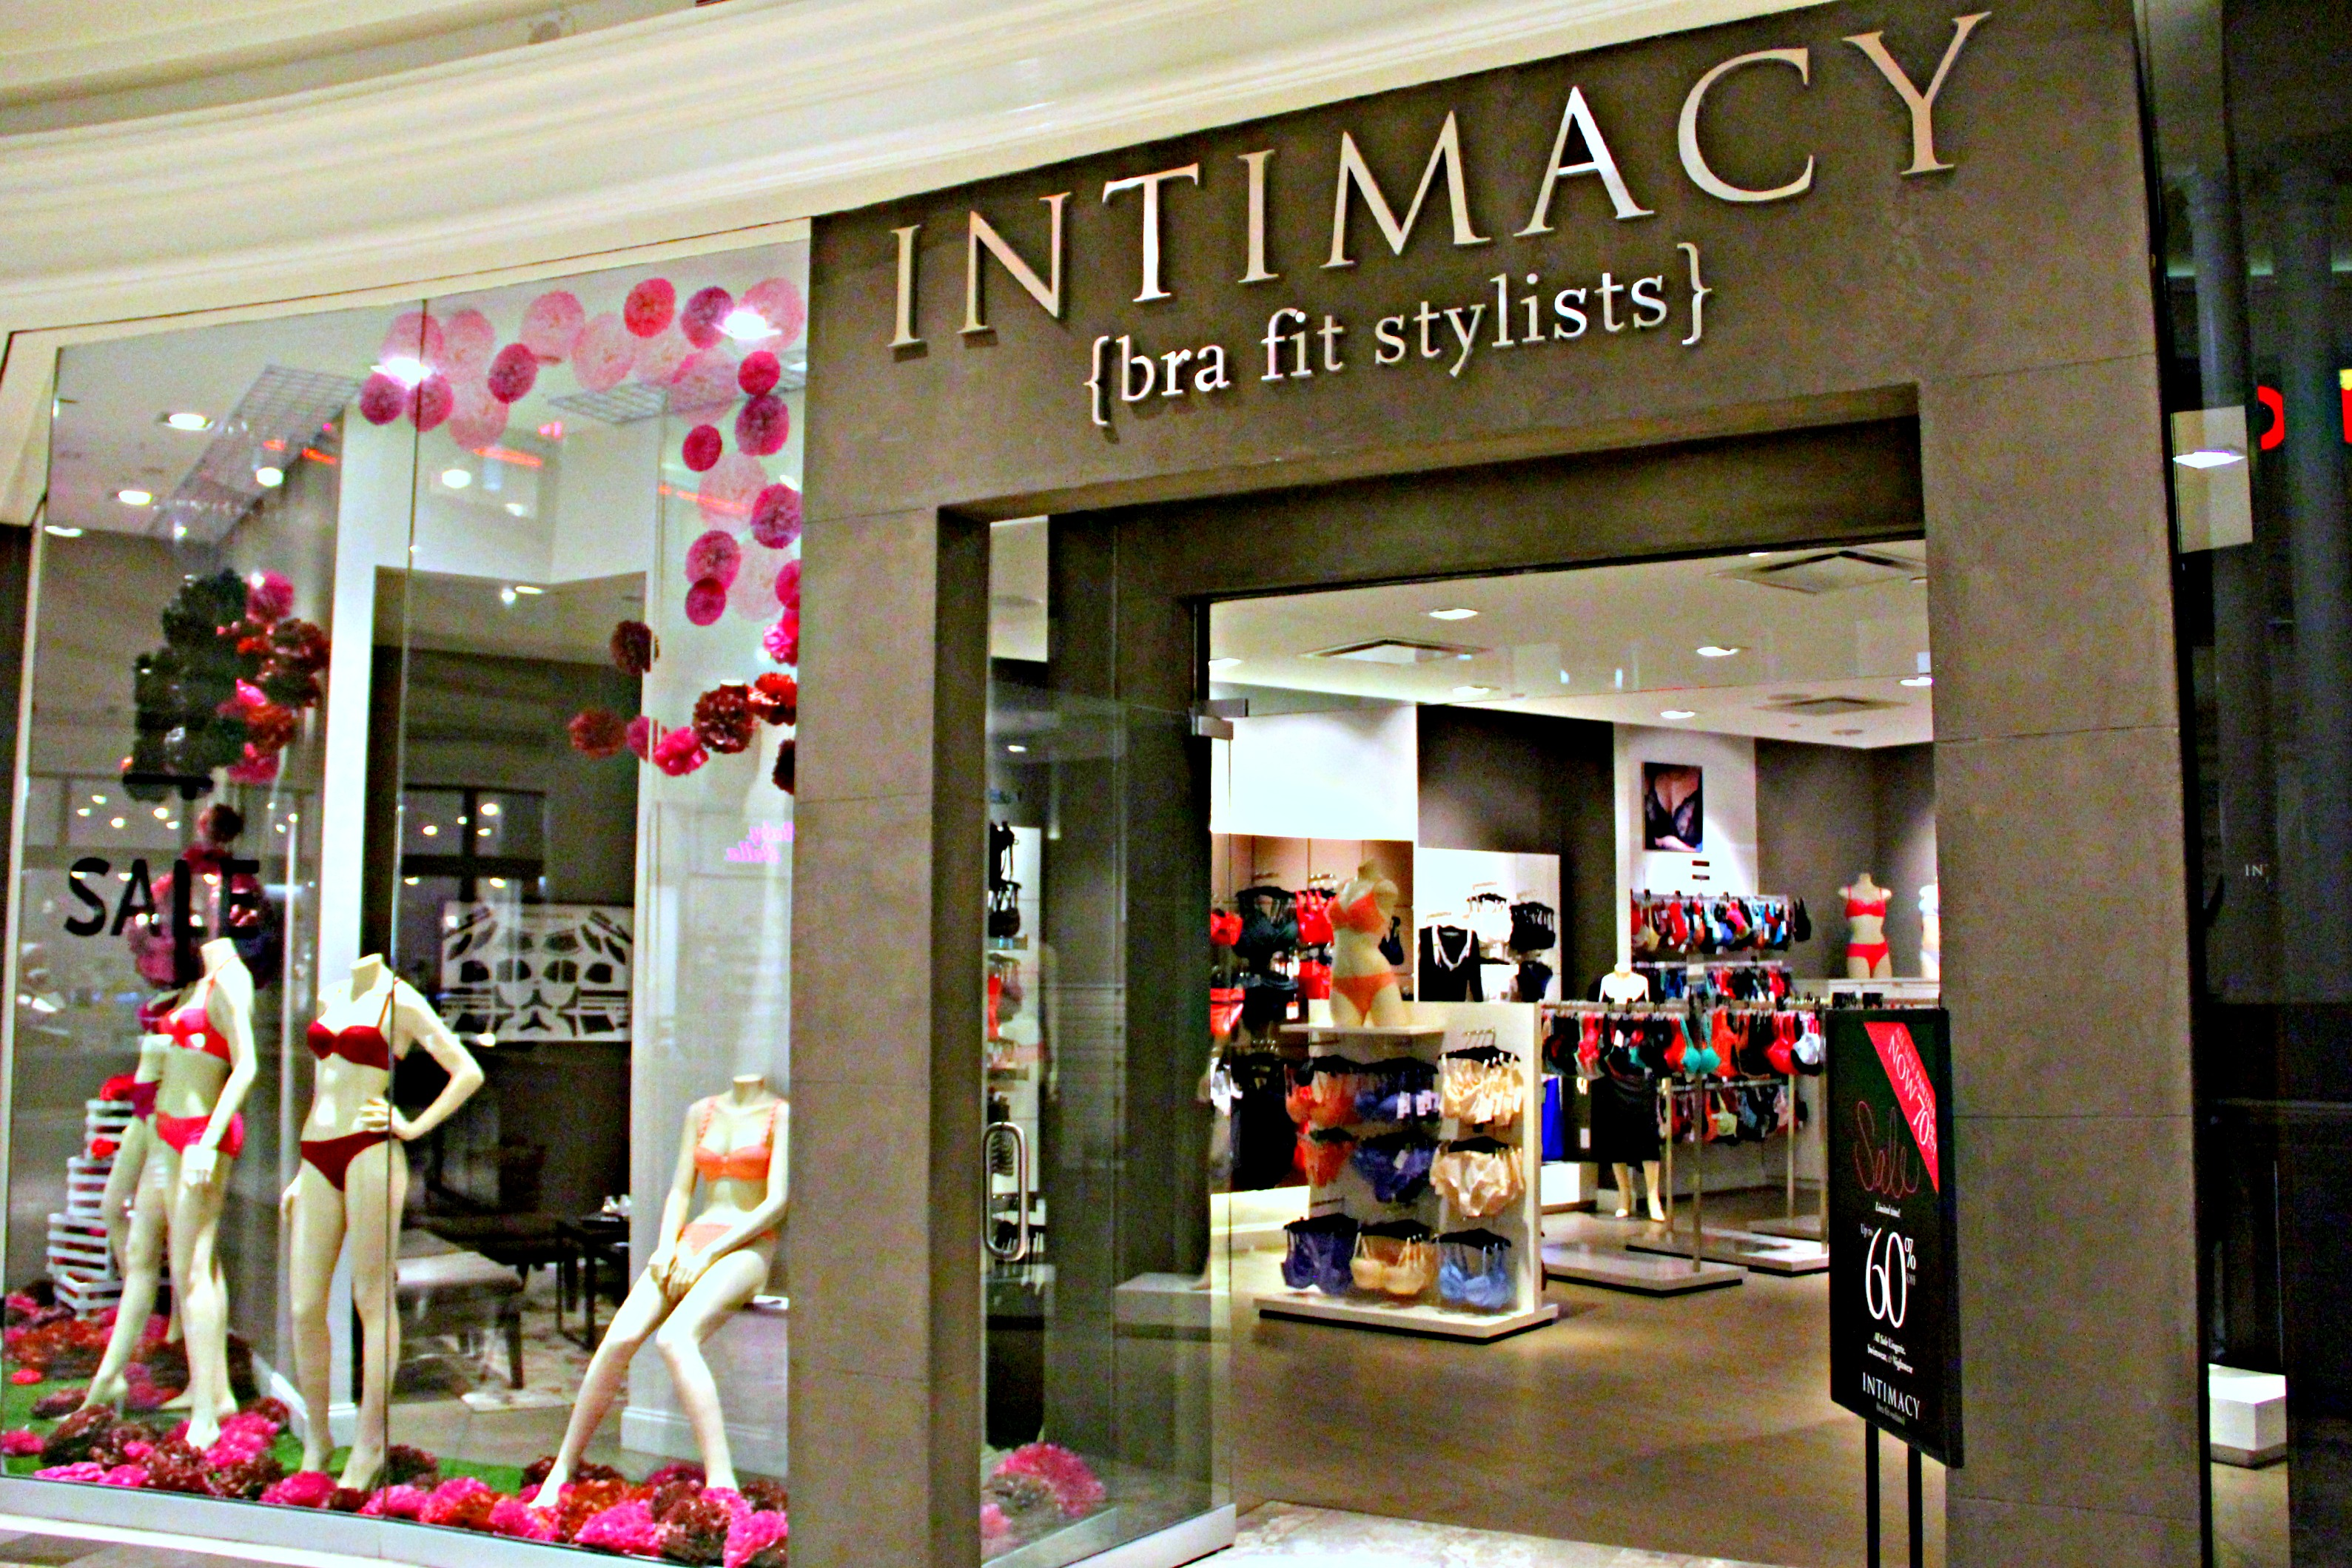 National Bra Fit Styling Month at Intimacy